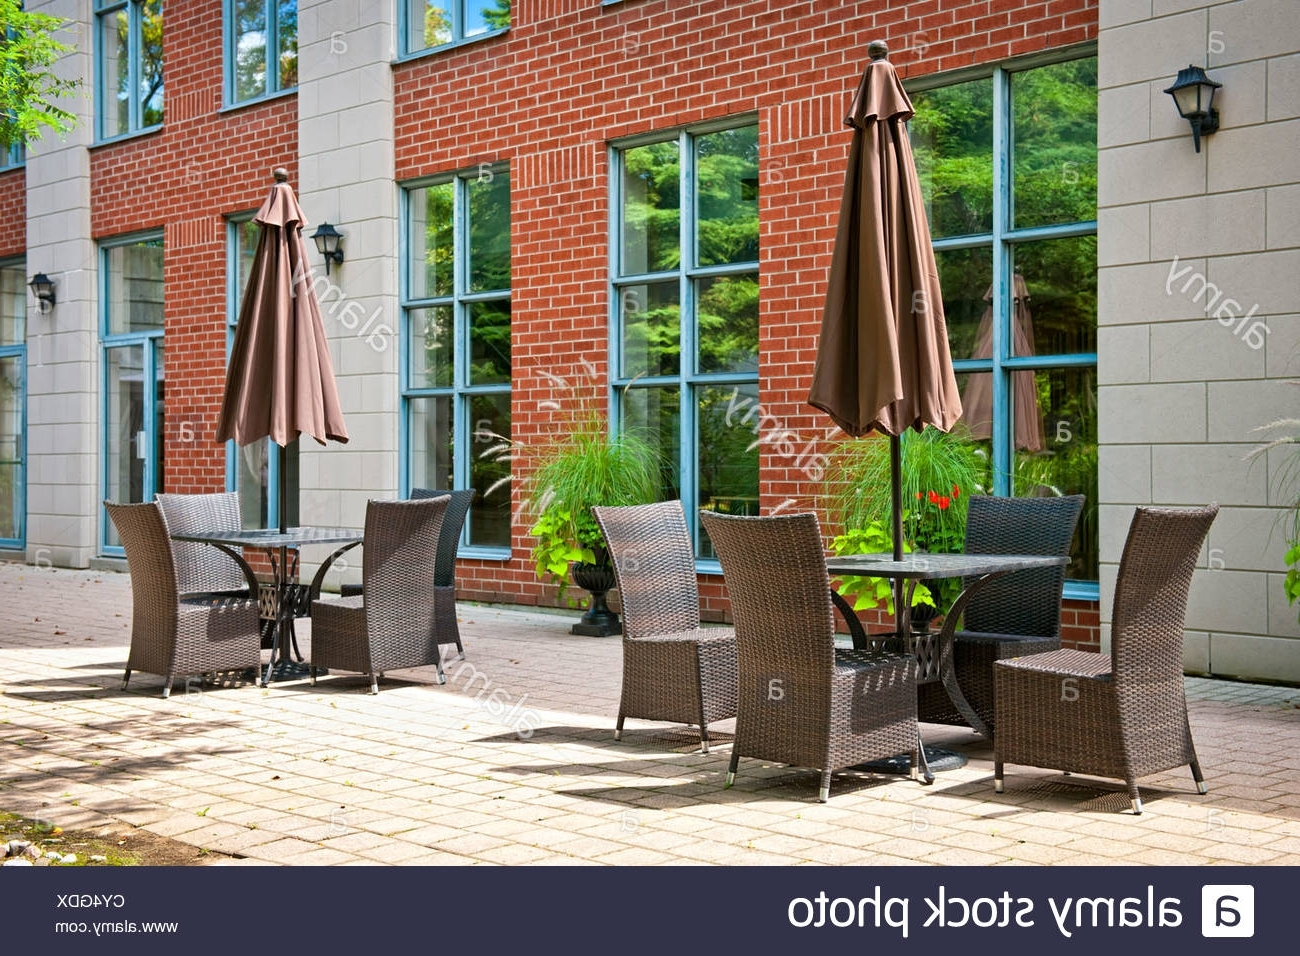 Upscale Patio Umbrellas For Well Known Patio Furniture With Umbrellas On Stone Patio Near Upscale Condo (Gallery 20 of 20)